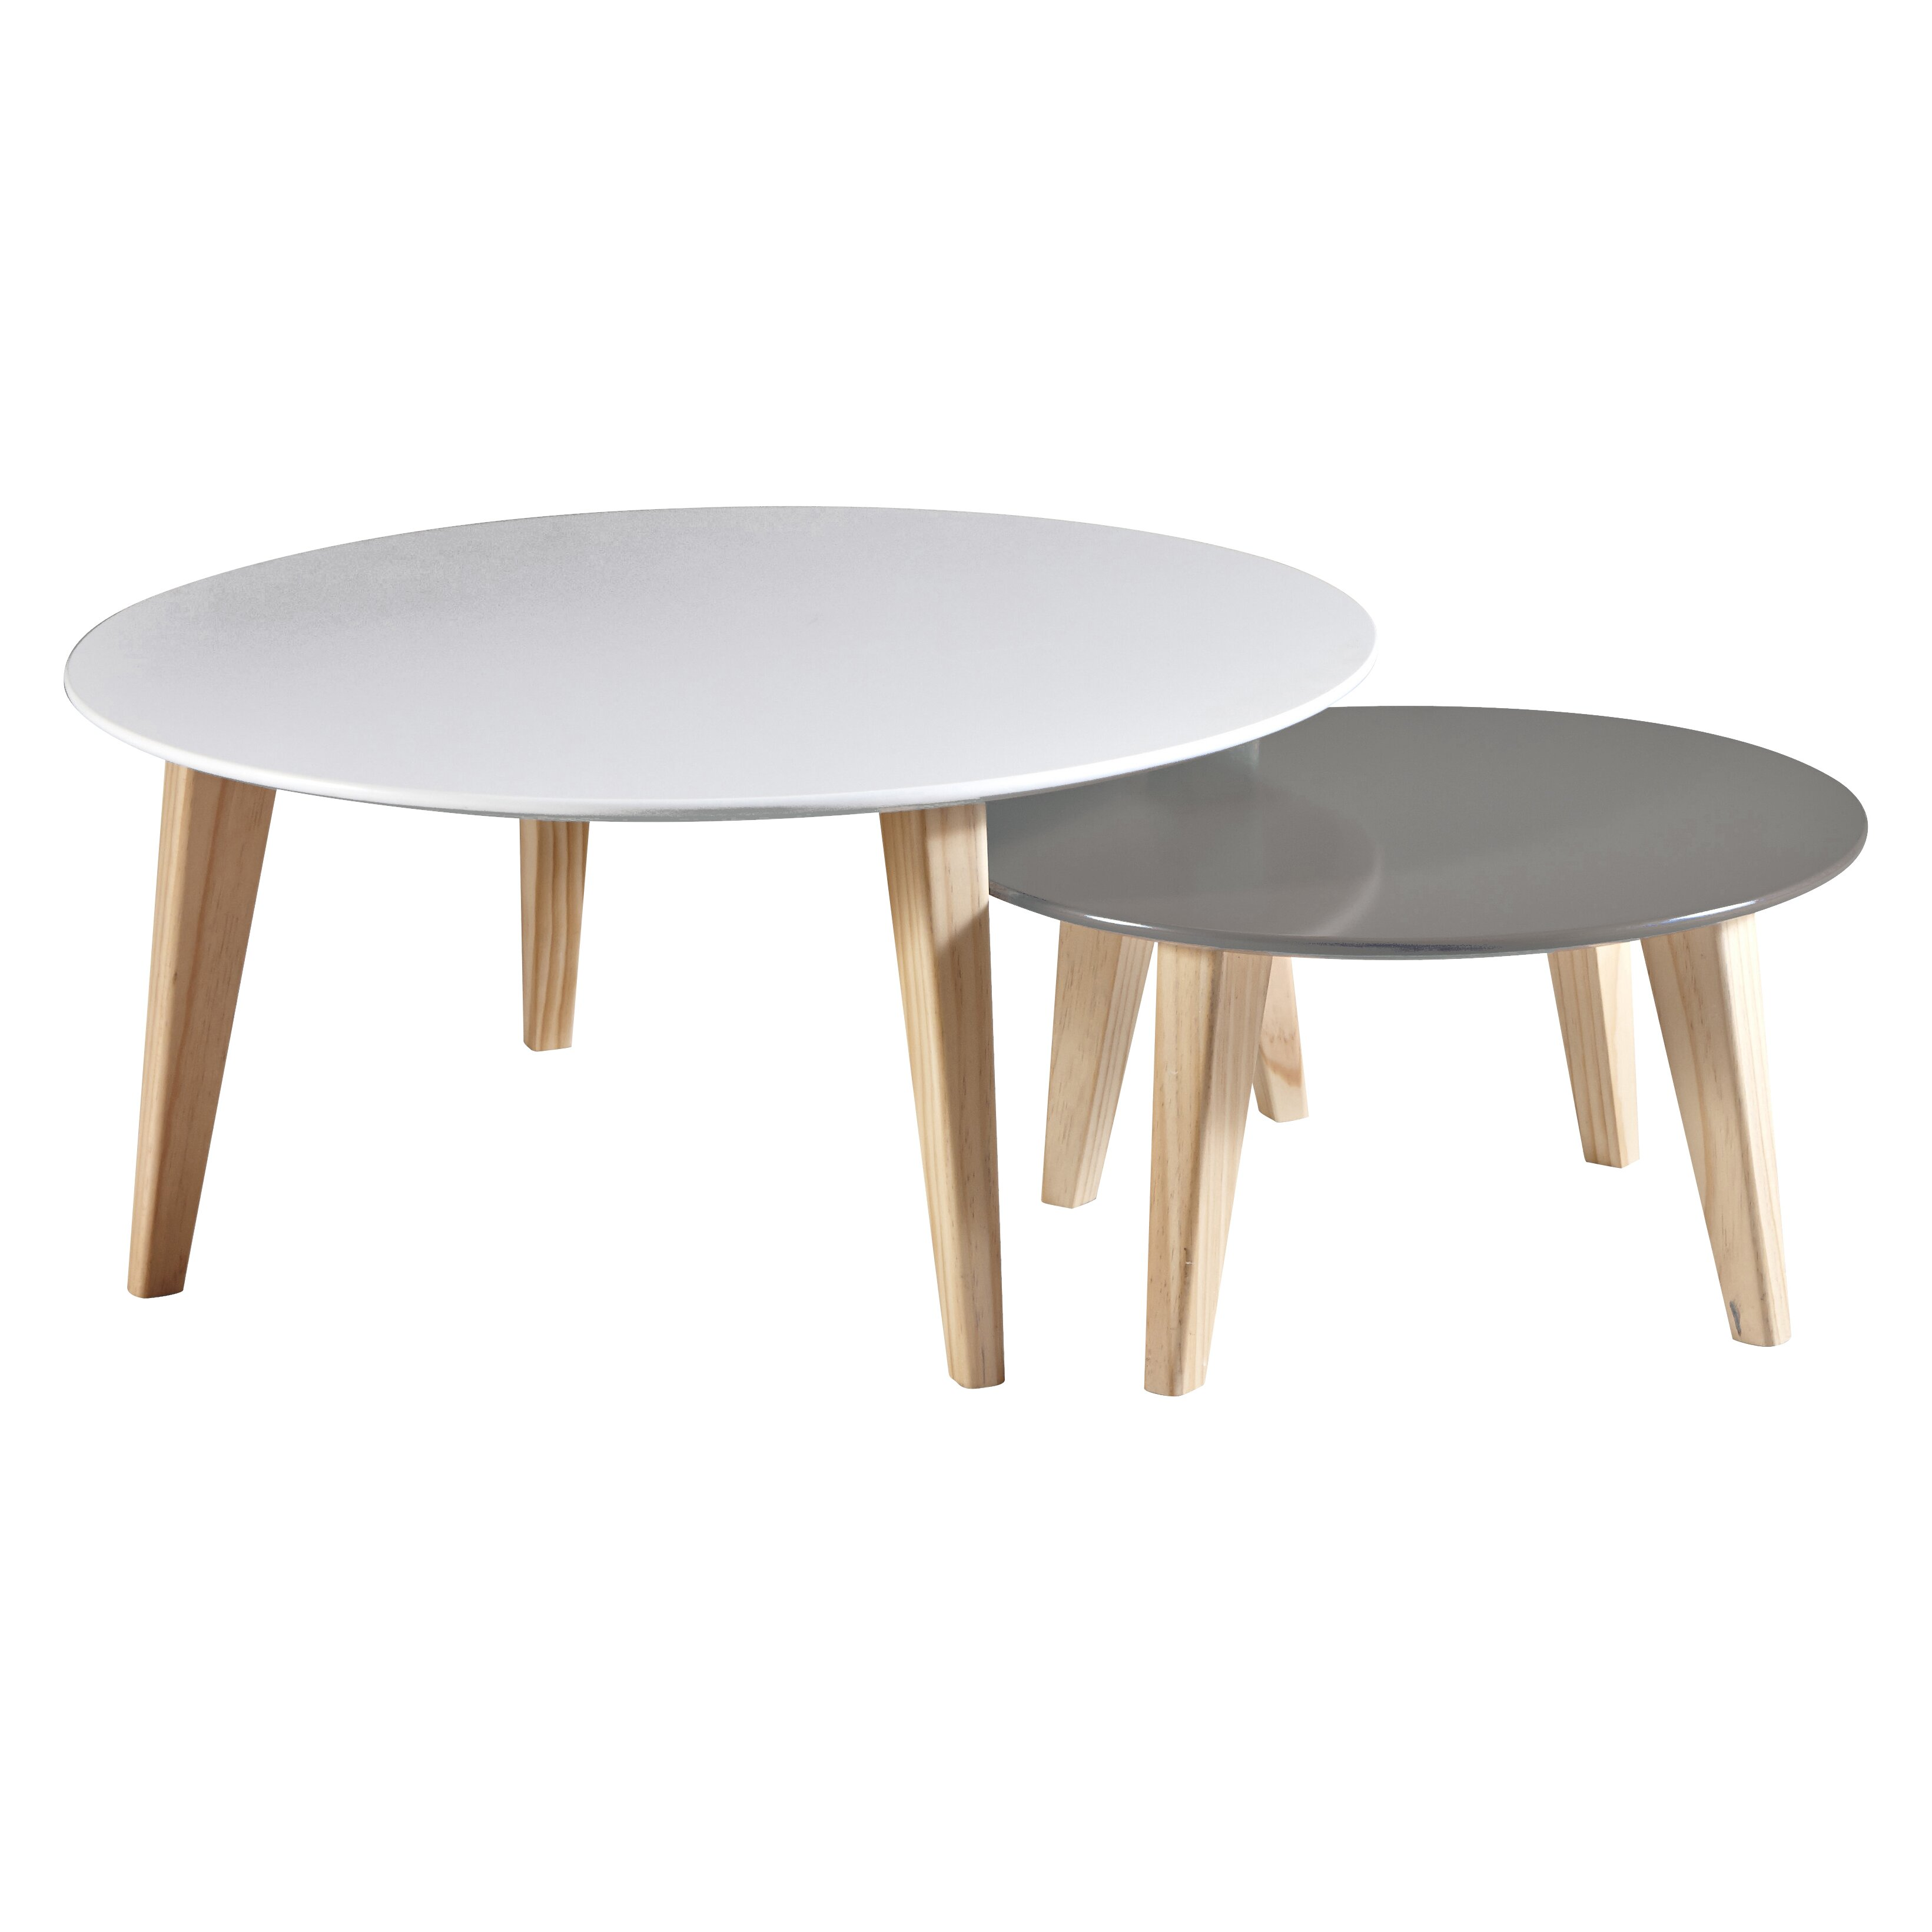 Demeyere round 2 piece coffee table set reviews wayfair uk for Table basse scandinave gigogne